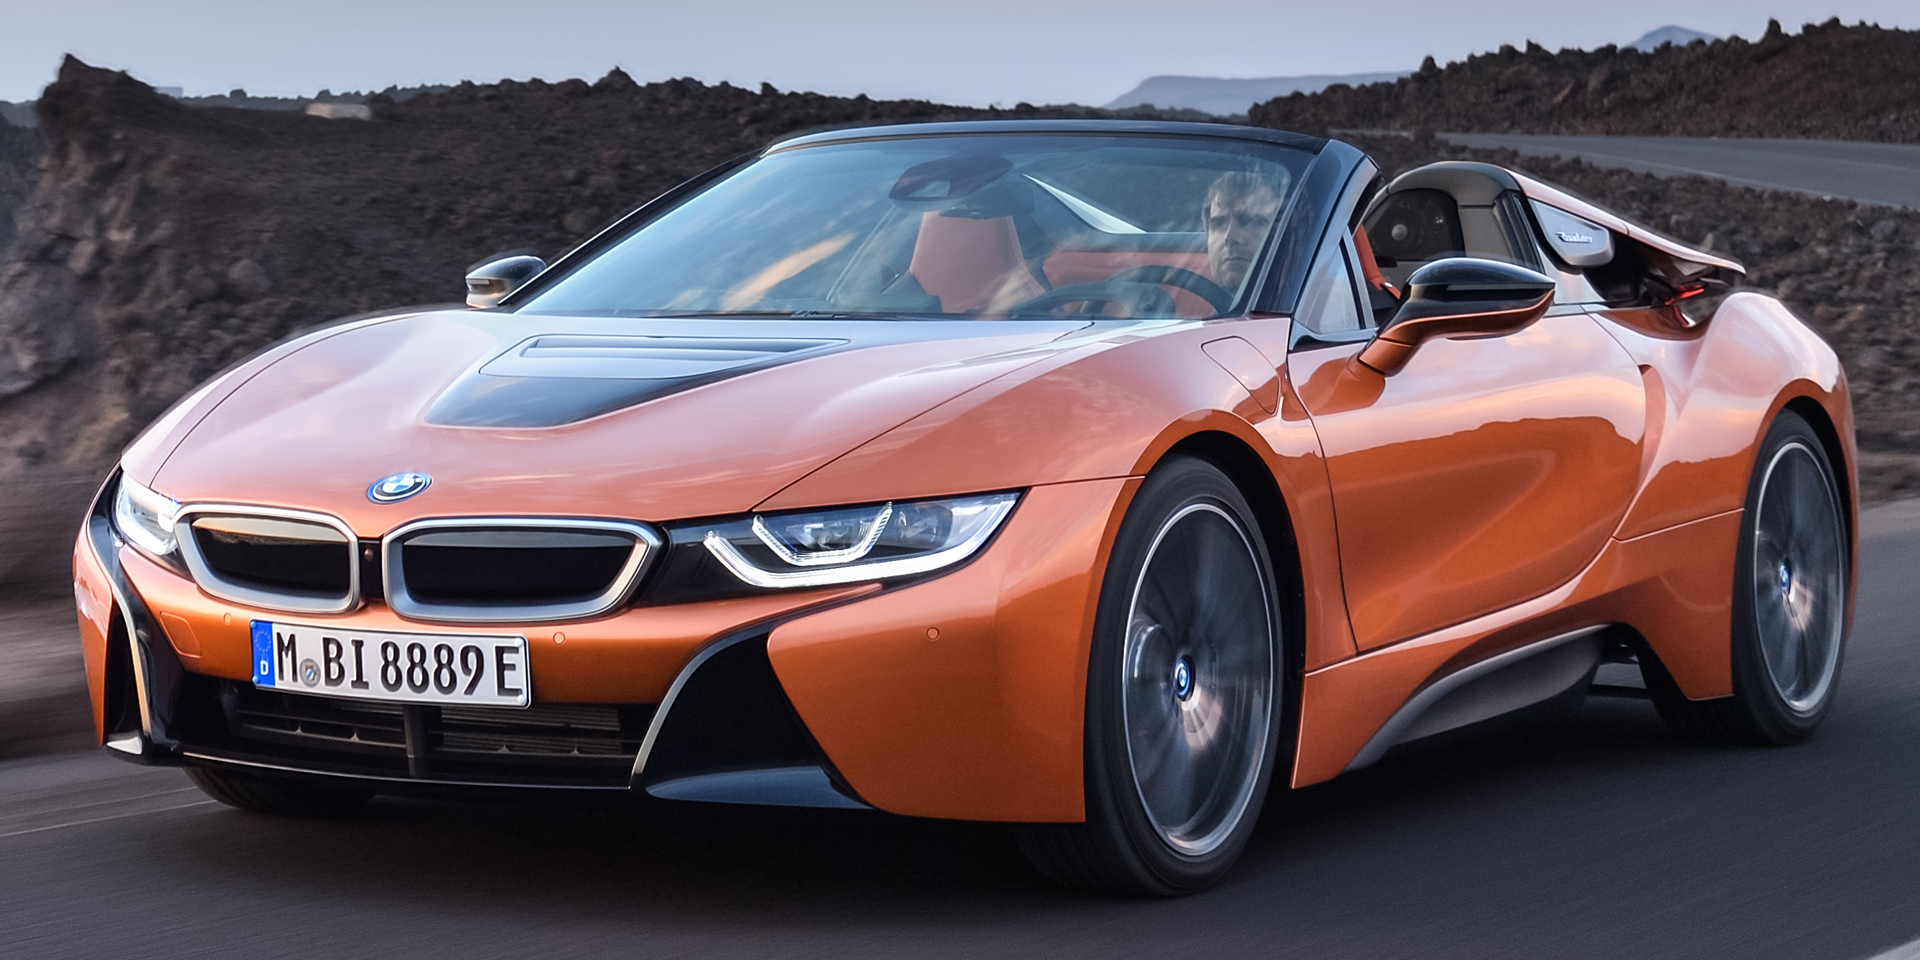 93 New 2019 Bmw Sports Car Release Date by 2019 Bmw Sports Car